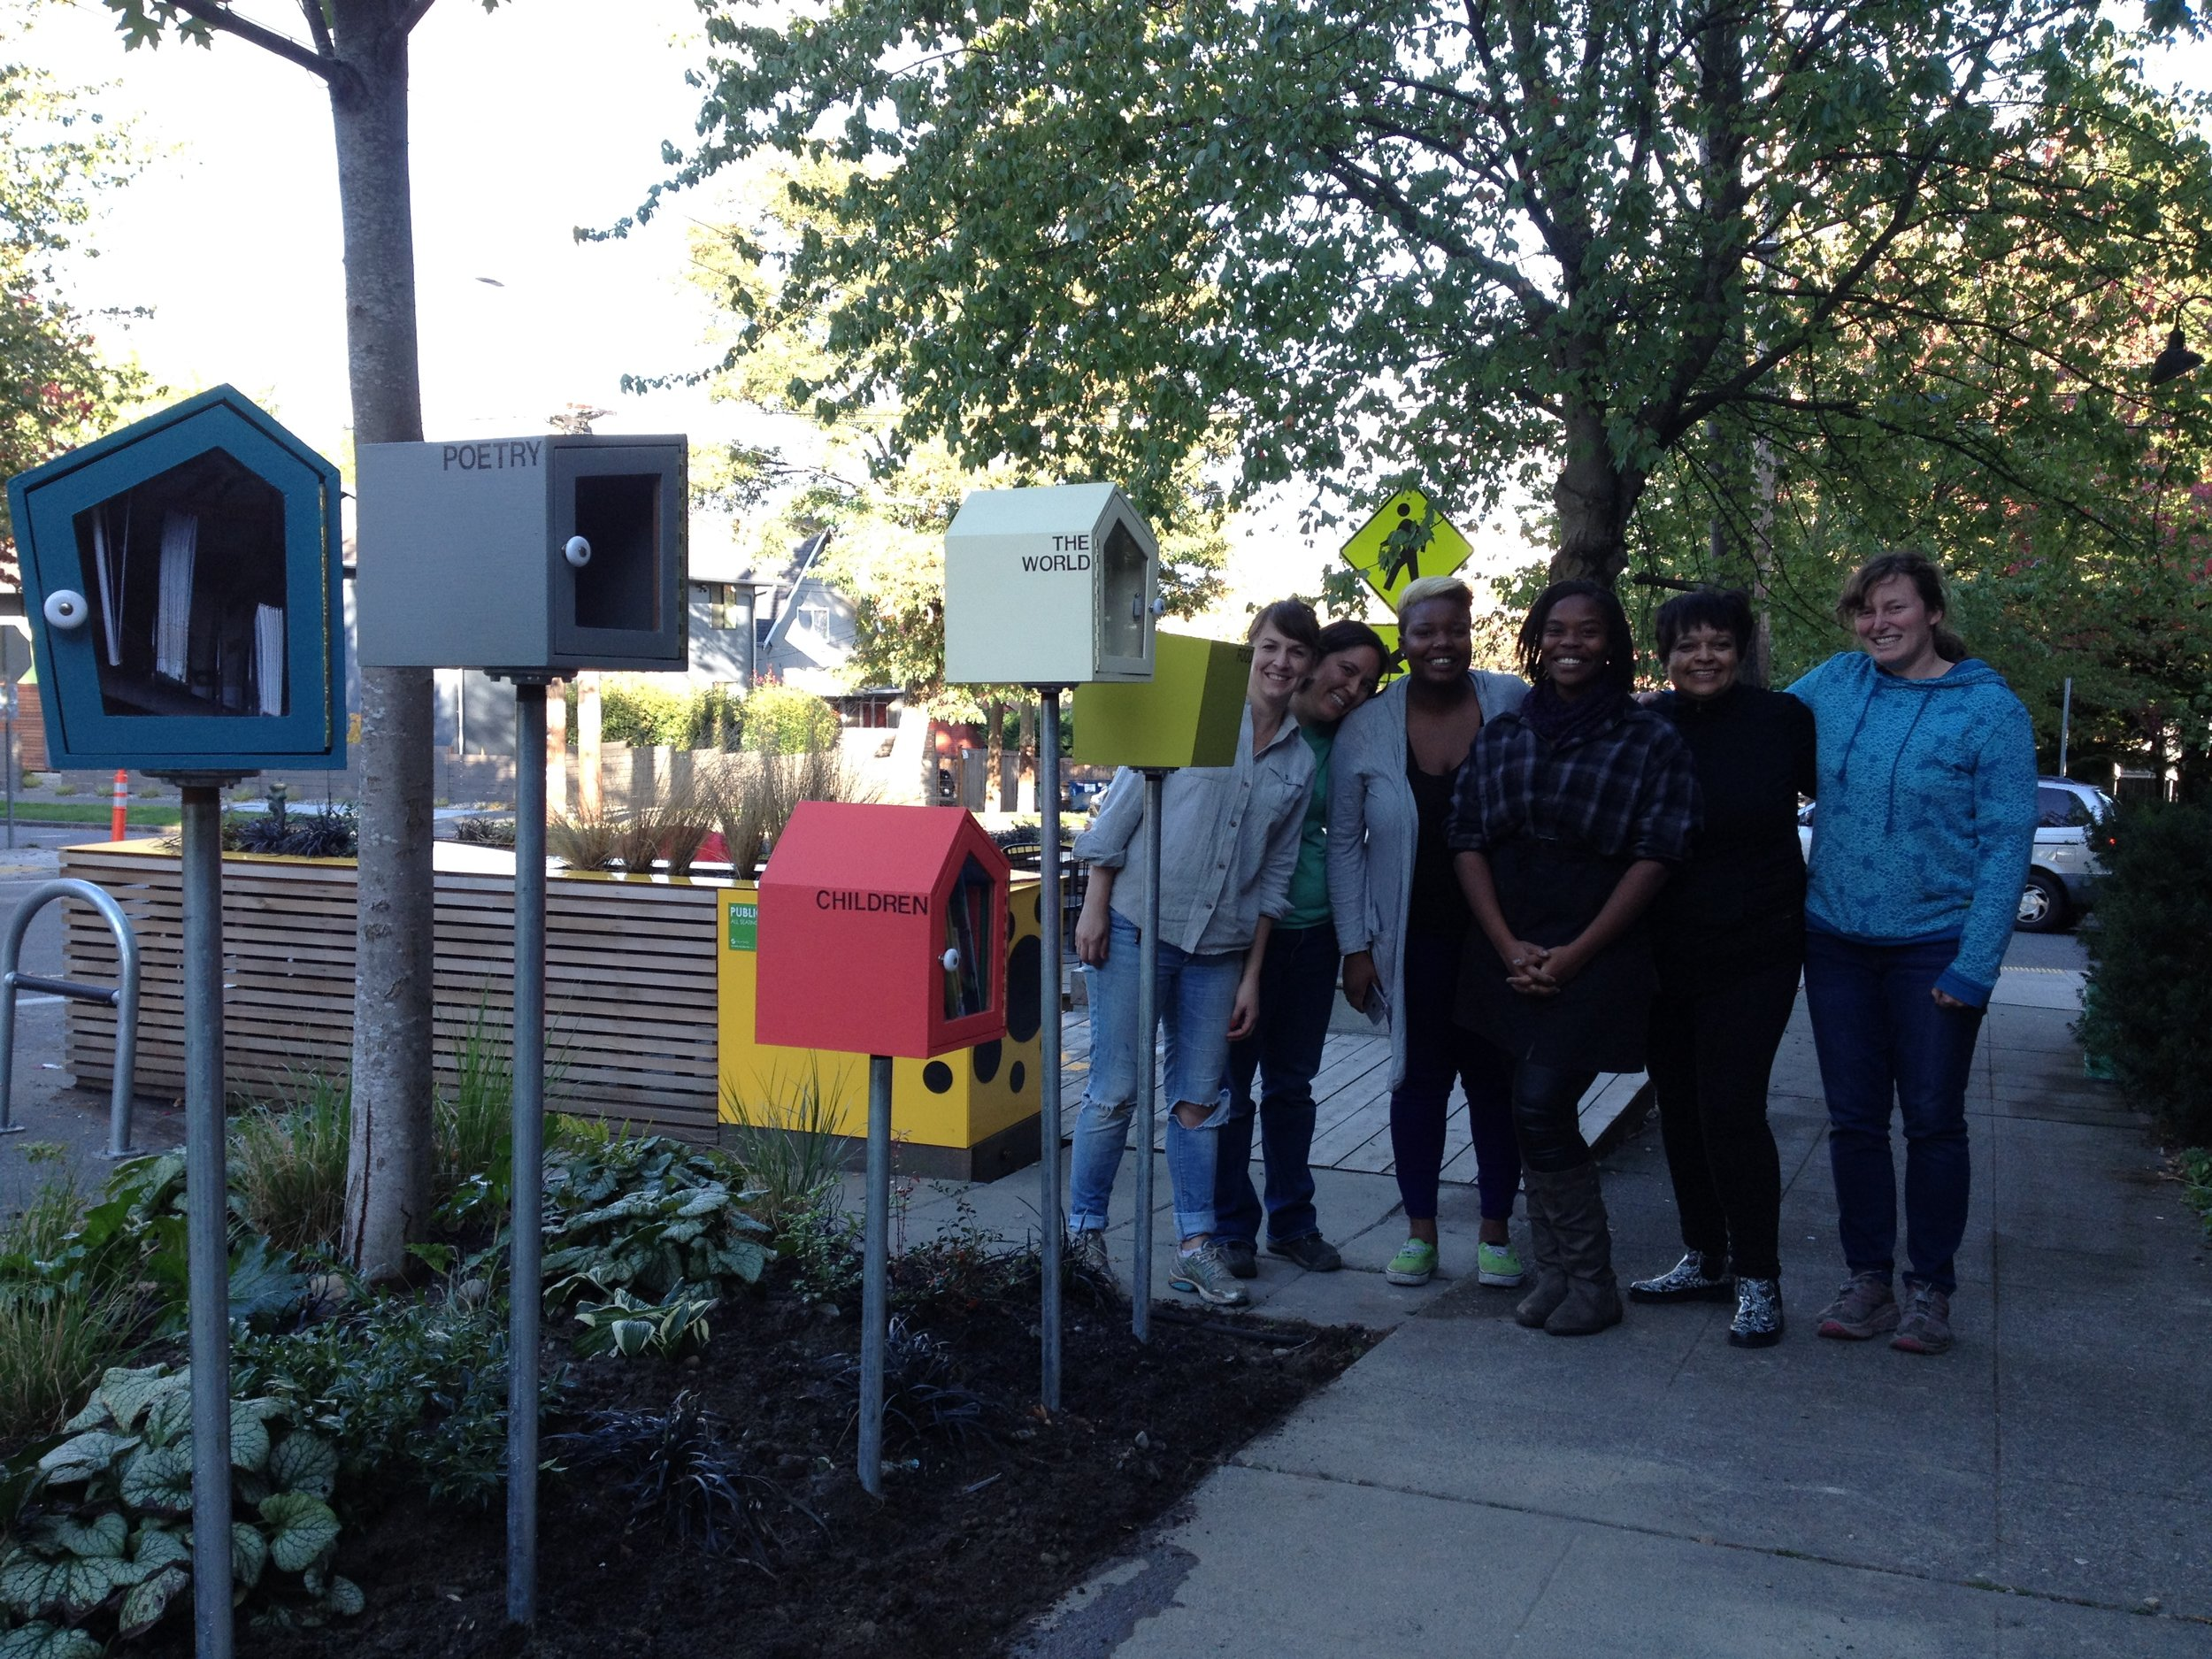 Parklet leaders smile beyond the library boxes.